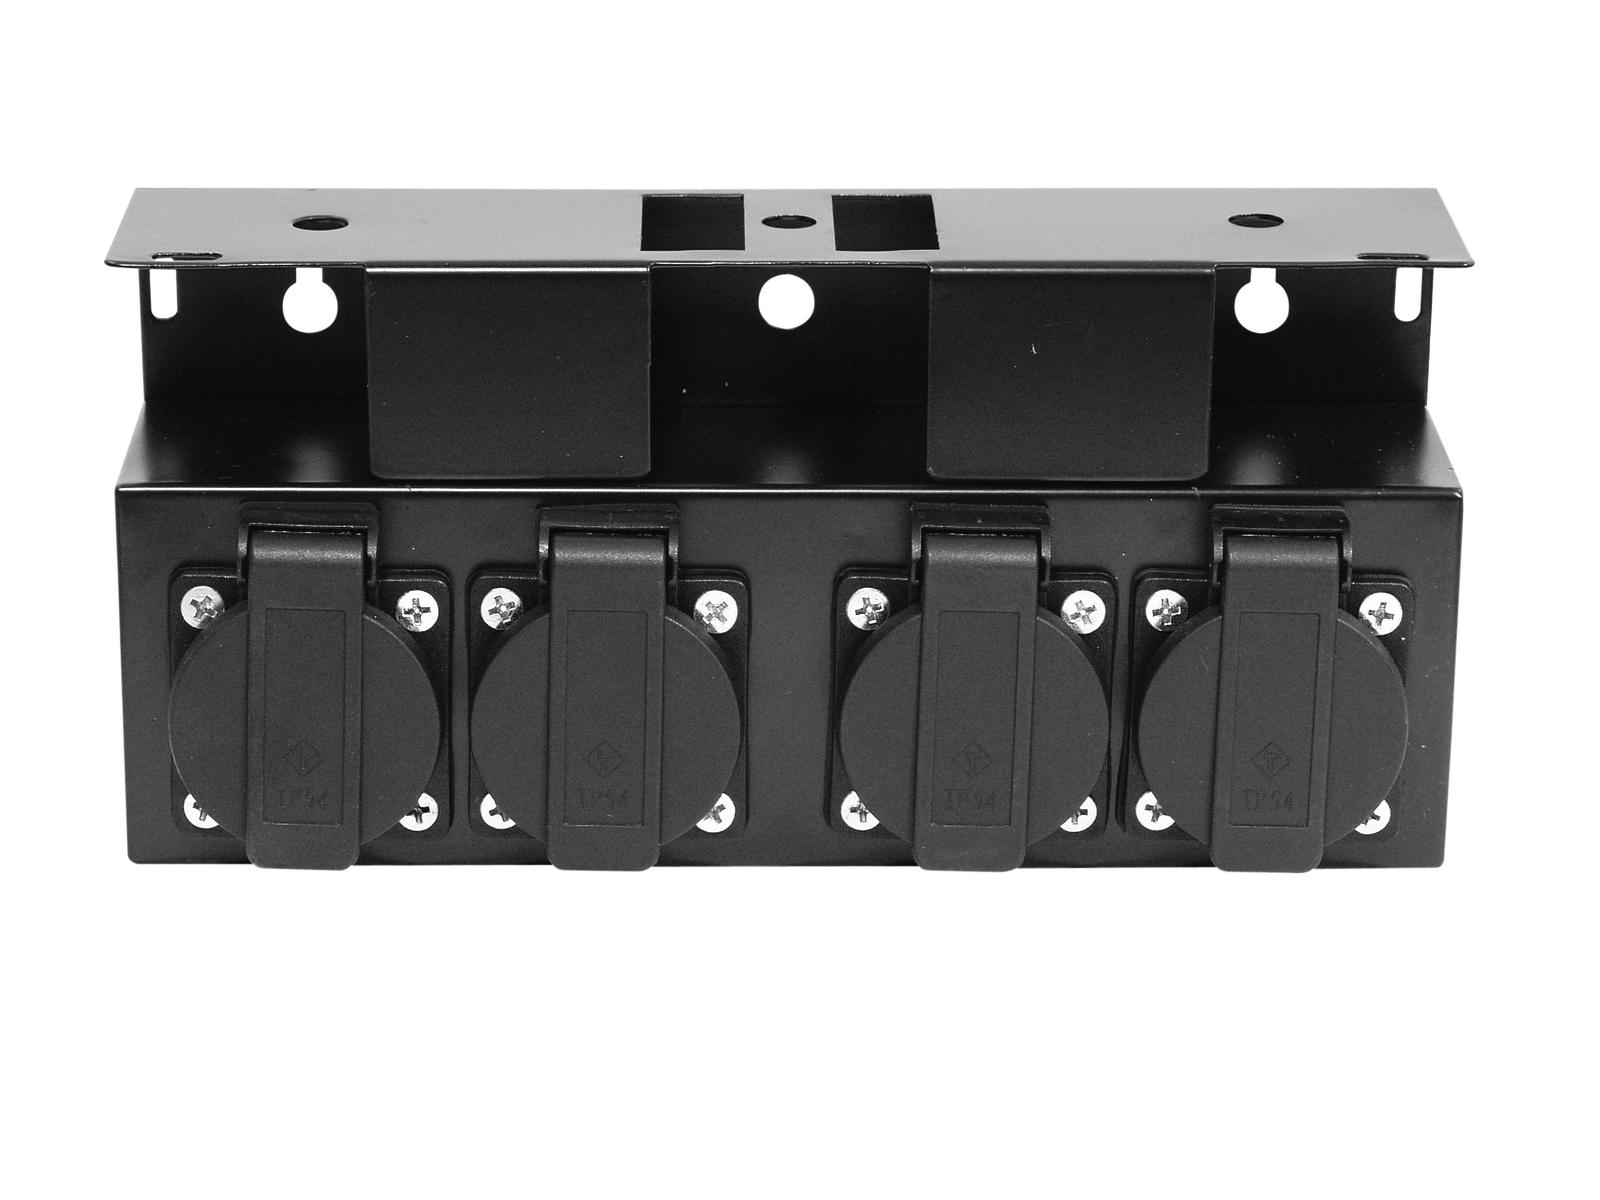 Power distributor EUROLITE with 4 outlets with safety cover